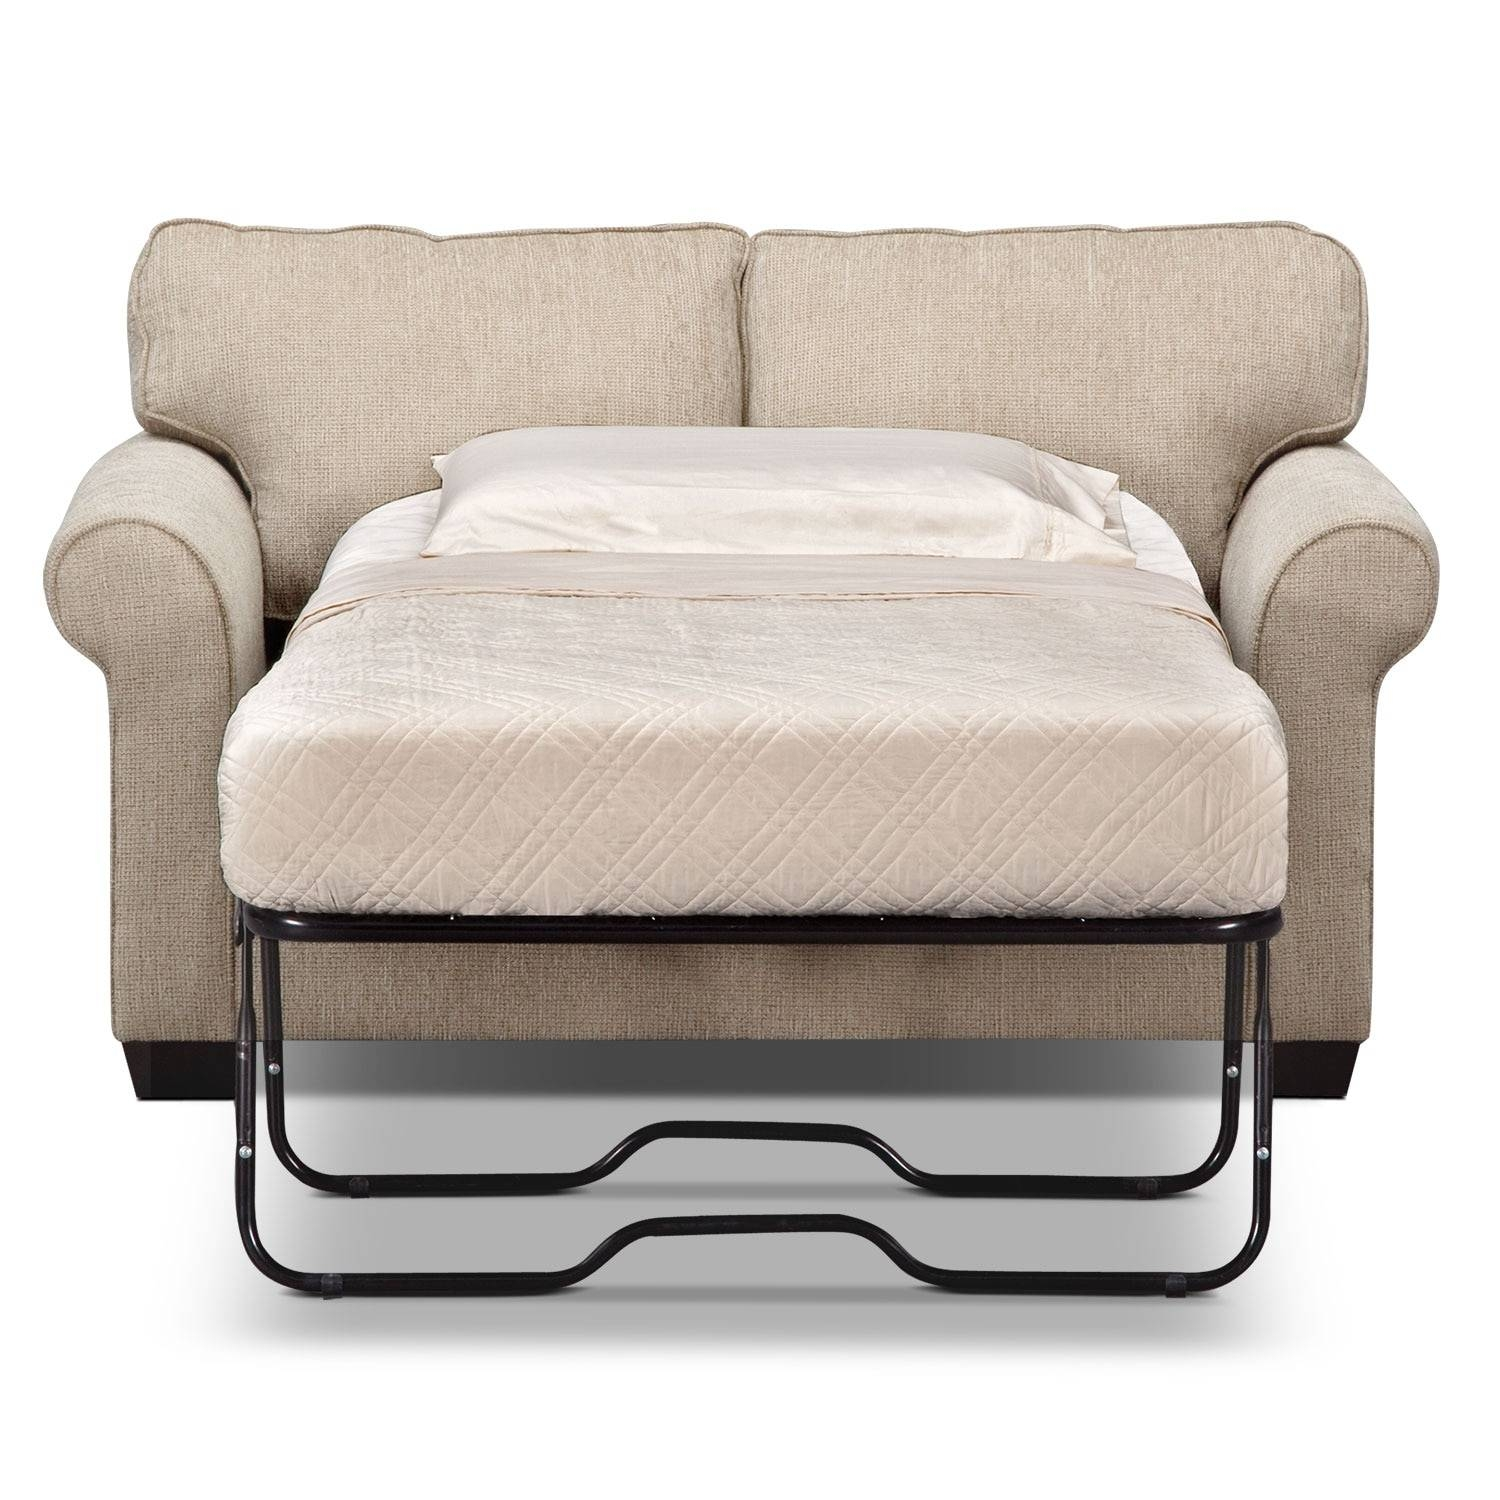 Loveseat Sleeper Sofa Memory Foam